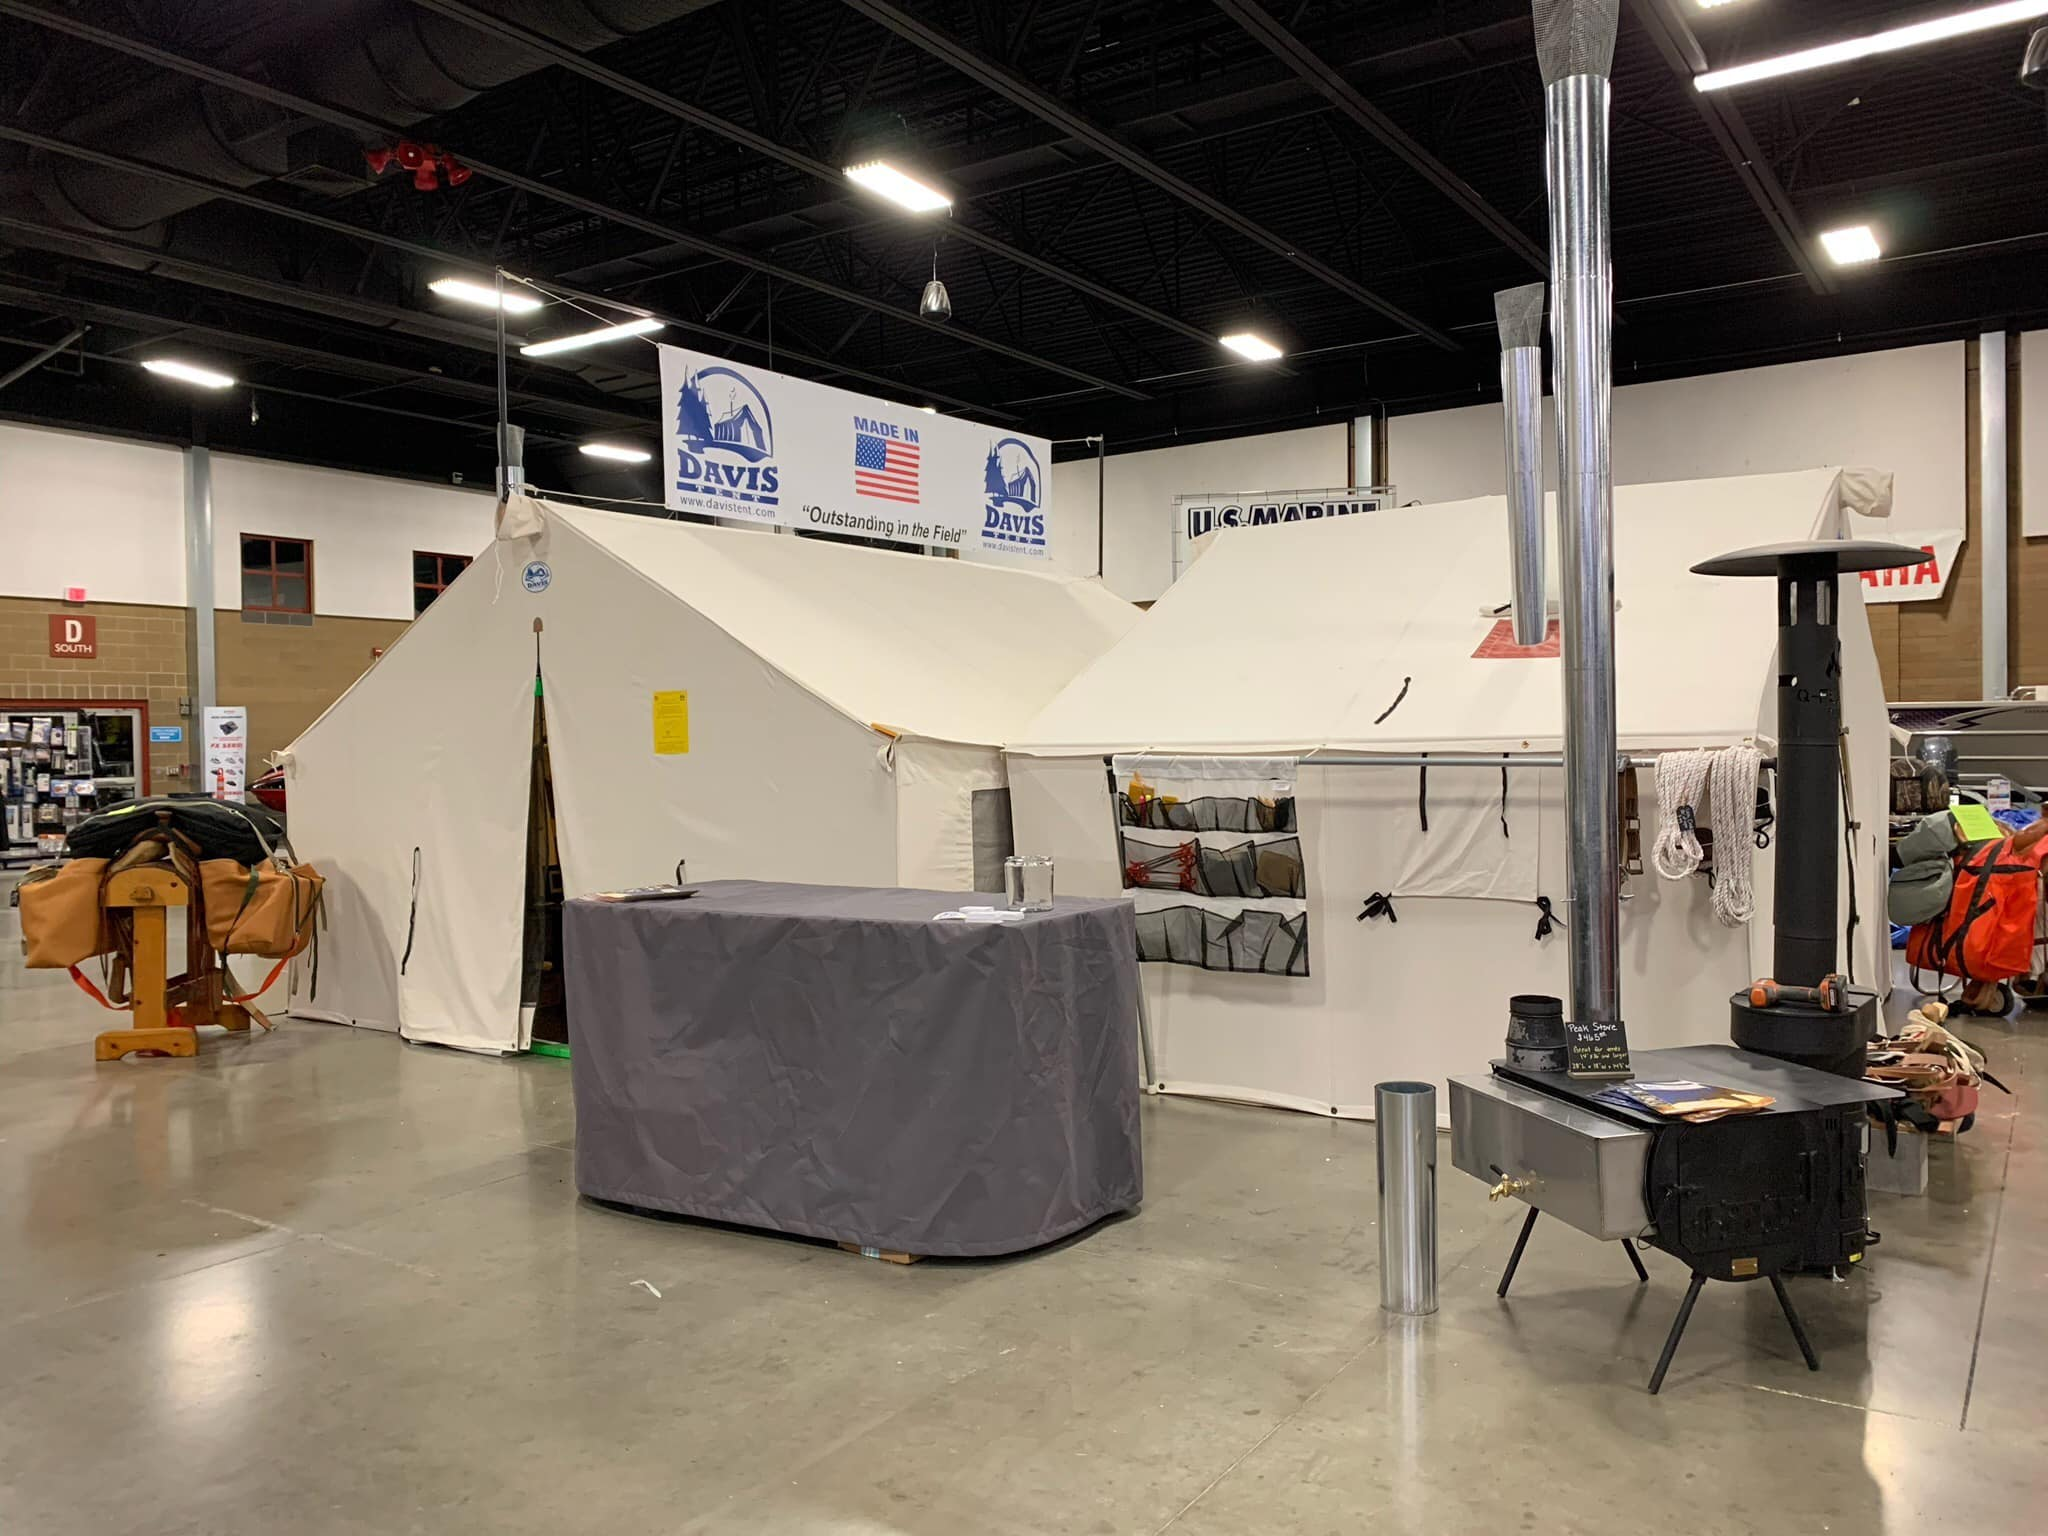 October 24, 2020: Steve's Meat Market – Lone Star Hunts – Len Lyall Chevrolet – Davis Tents